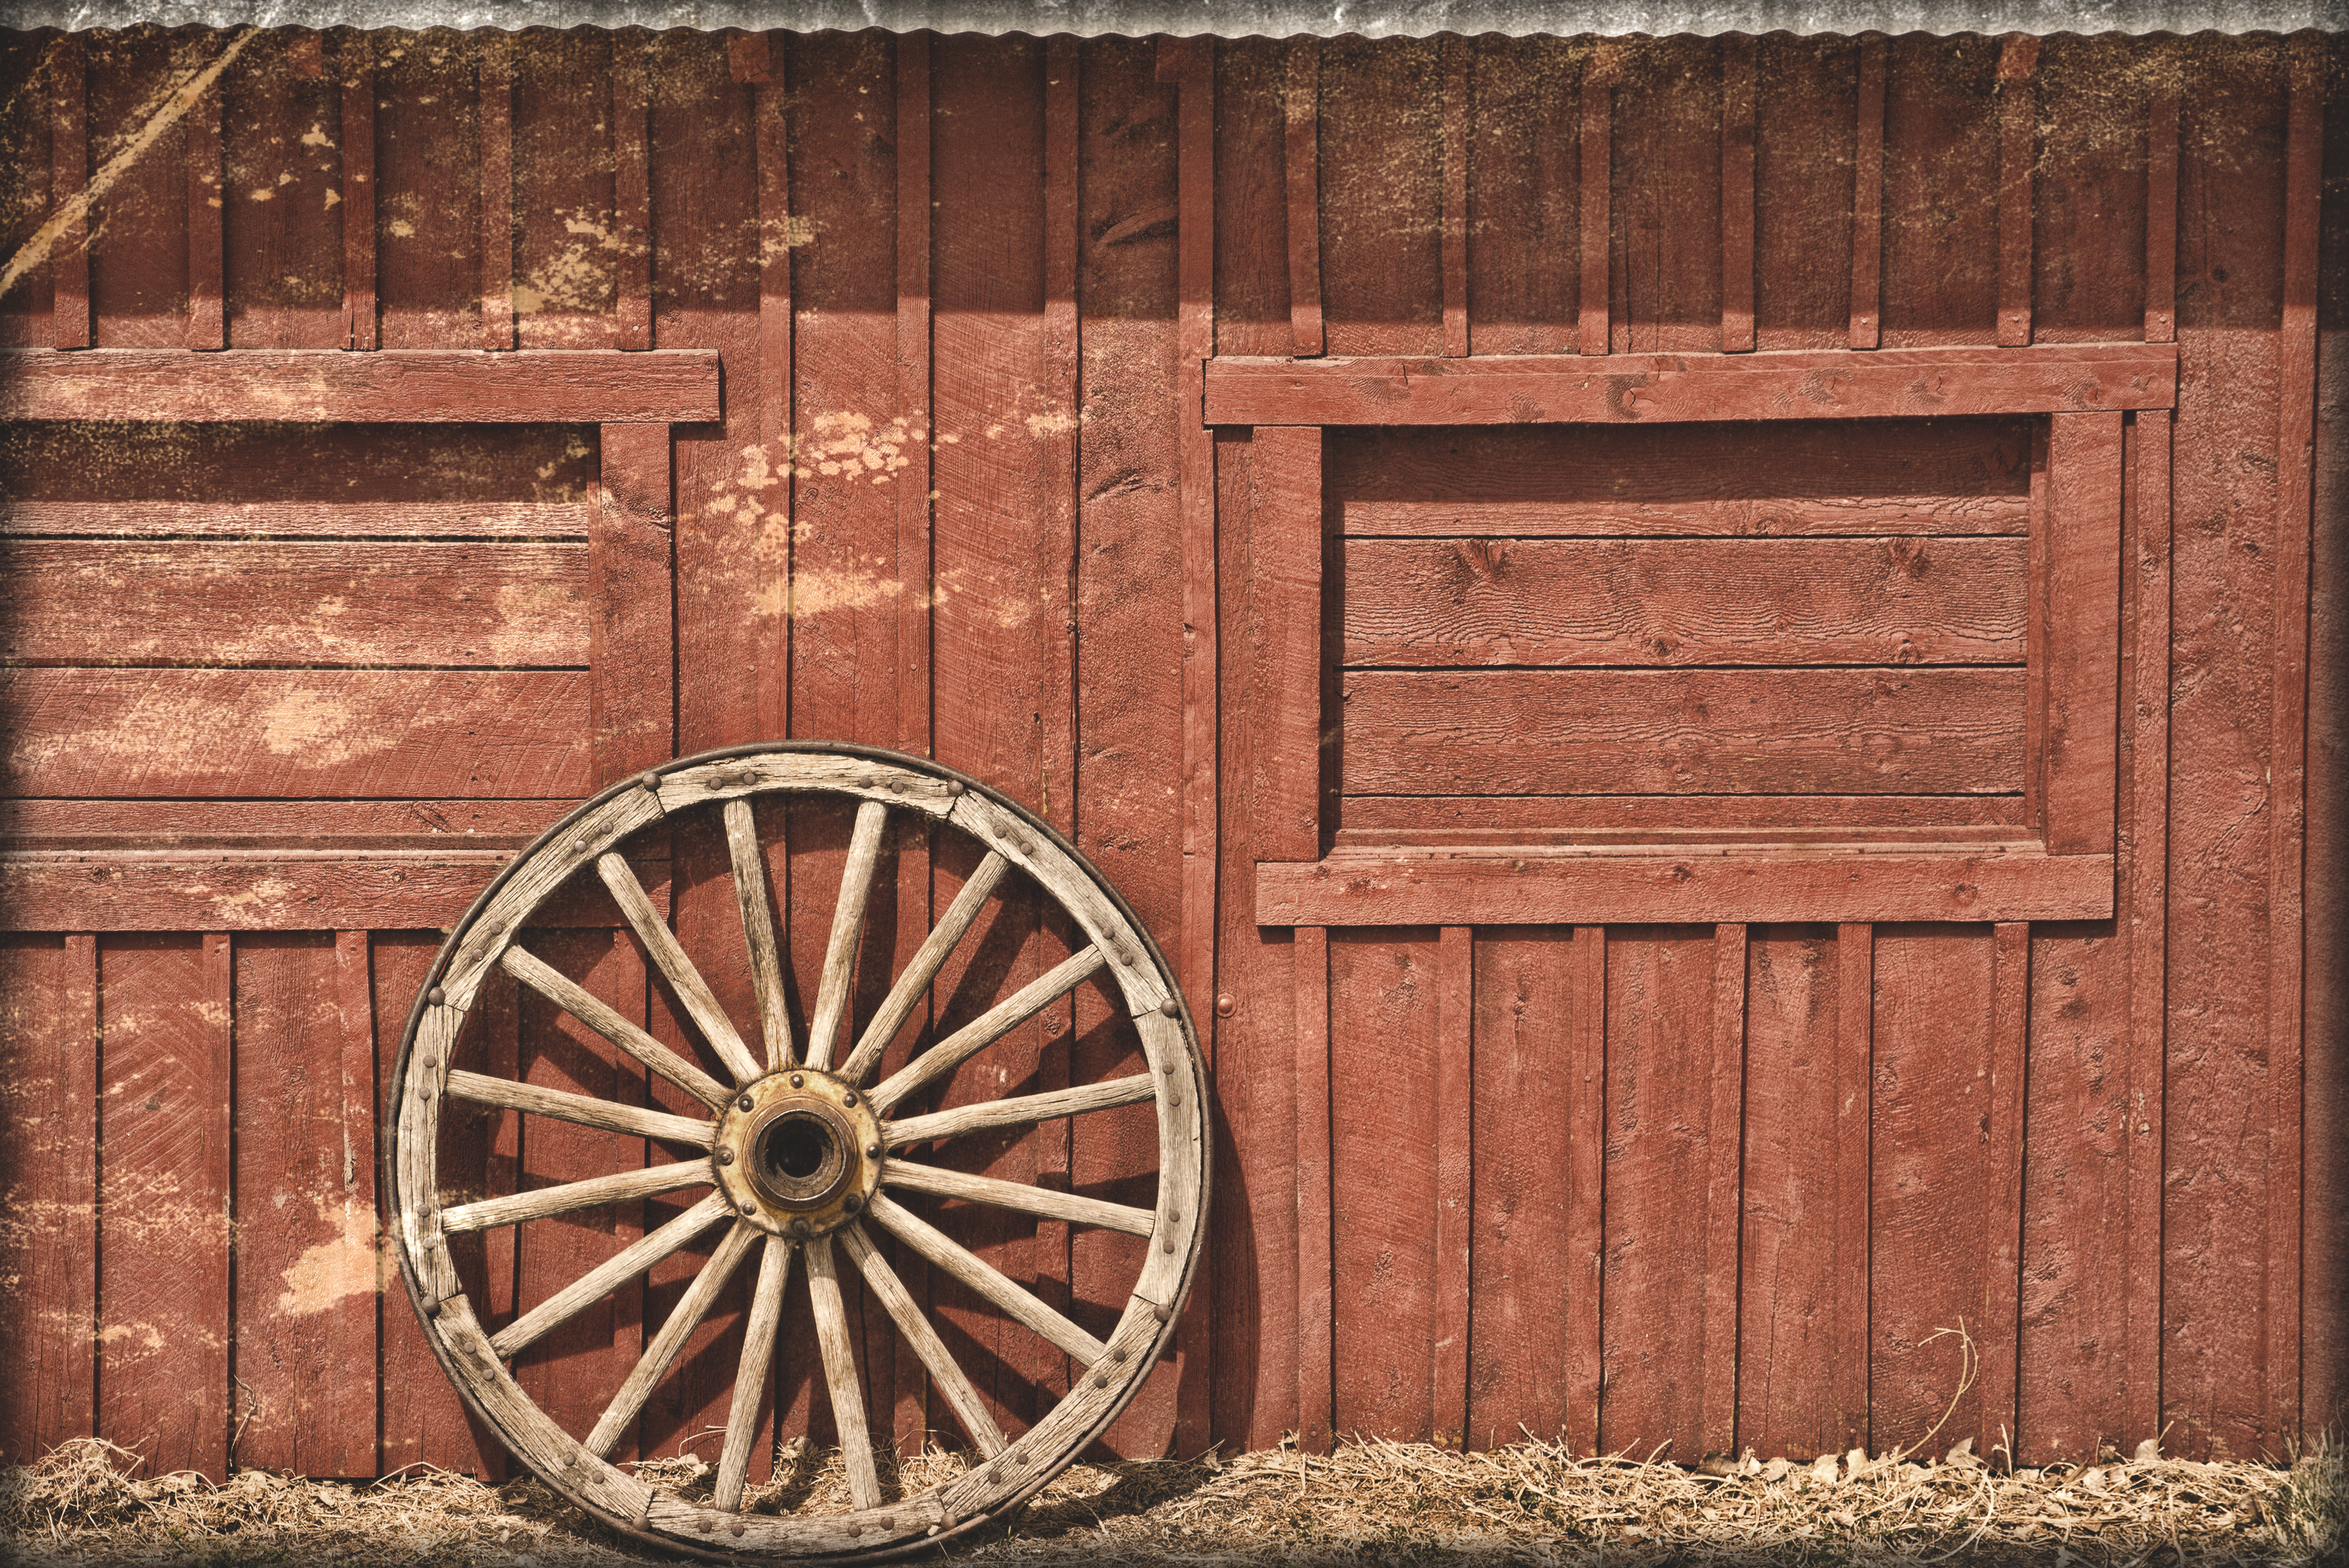 Cartoon red barn doors - Red Barn And Wooden Wheel By Mudyfrog On Deviantart Hd Wide Wallpaper For Widescreen